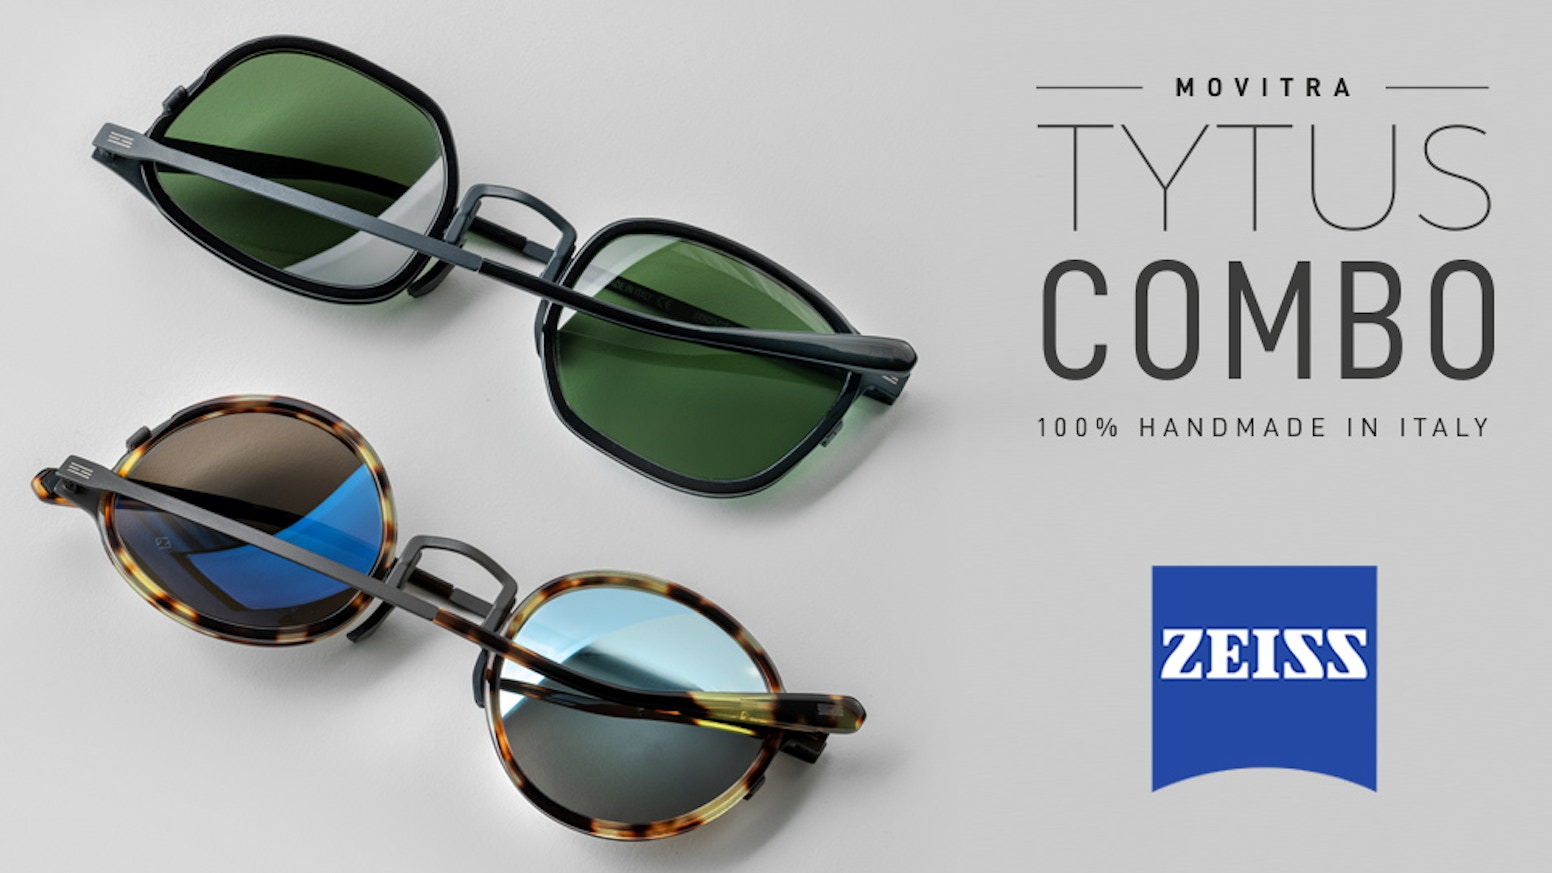 Built-to-last Beta Titanium Glasses with high quality Italian Acetate and Zeiss lenses in only 20 grams!